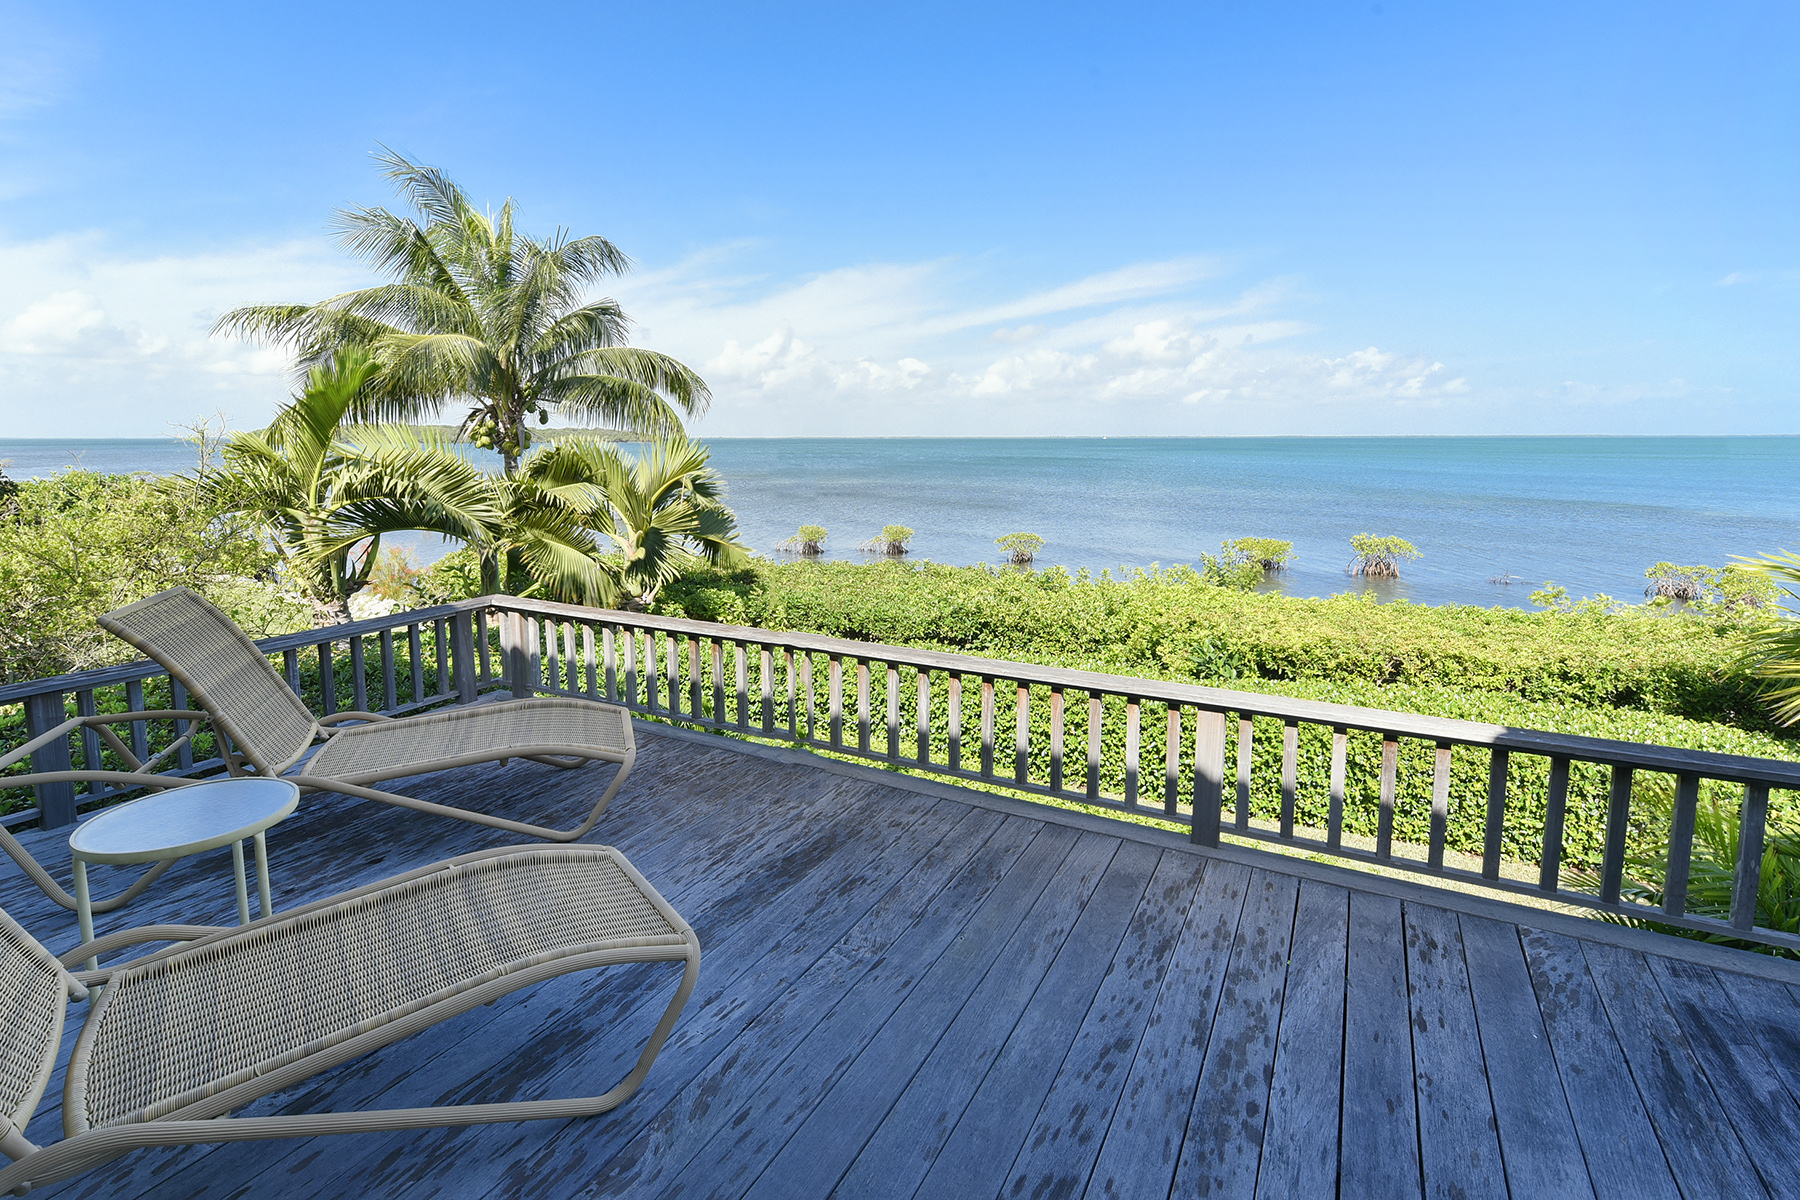 Moradia para Venda às Endless Bay Front Views at Ocean Reef 2 West Snapper Point Drive Ocean Reef Community, Key Largo, Florida, 33037 Estados Unidos